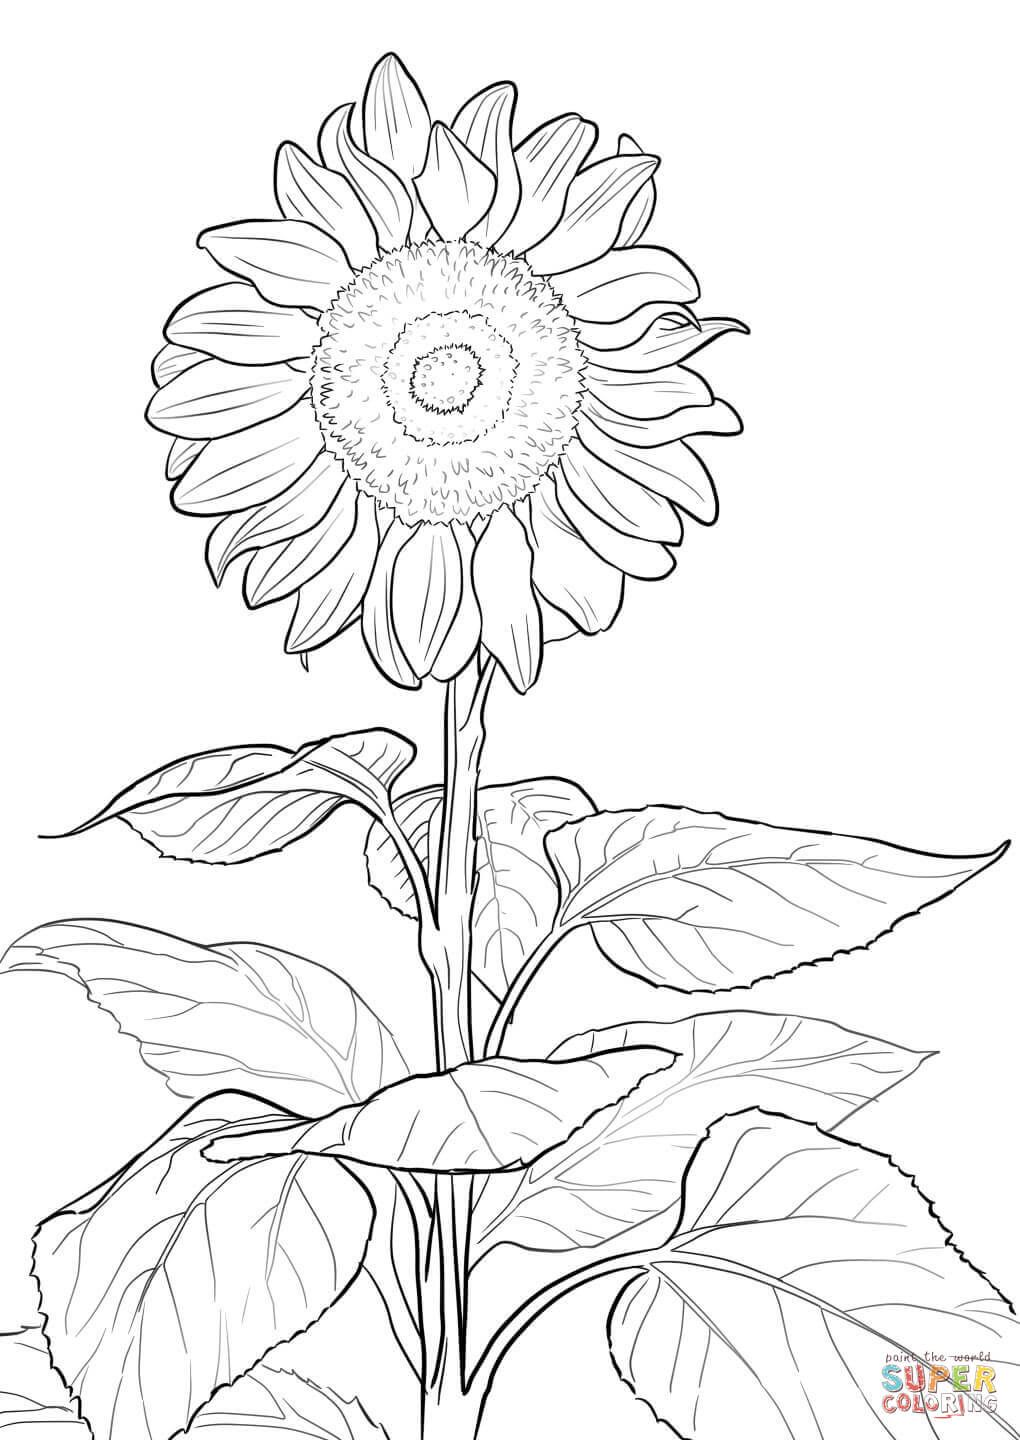 Sunflower | Super Coloring | Craft Ideas | Pinterest ...